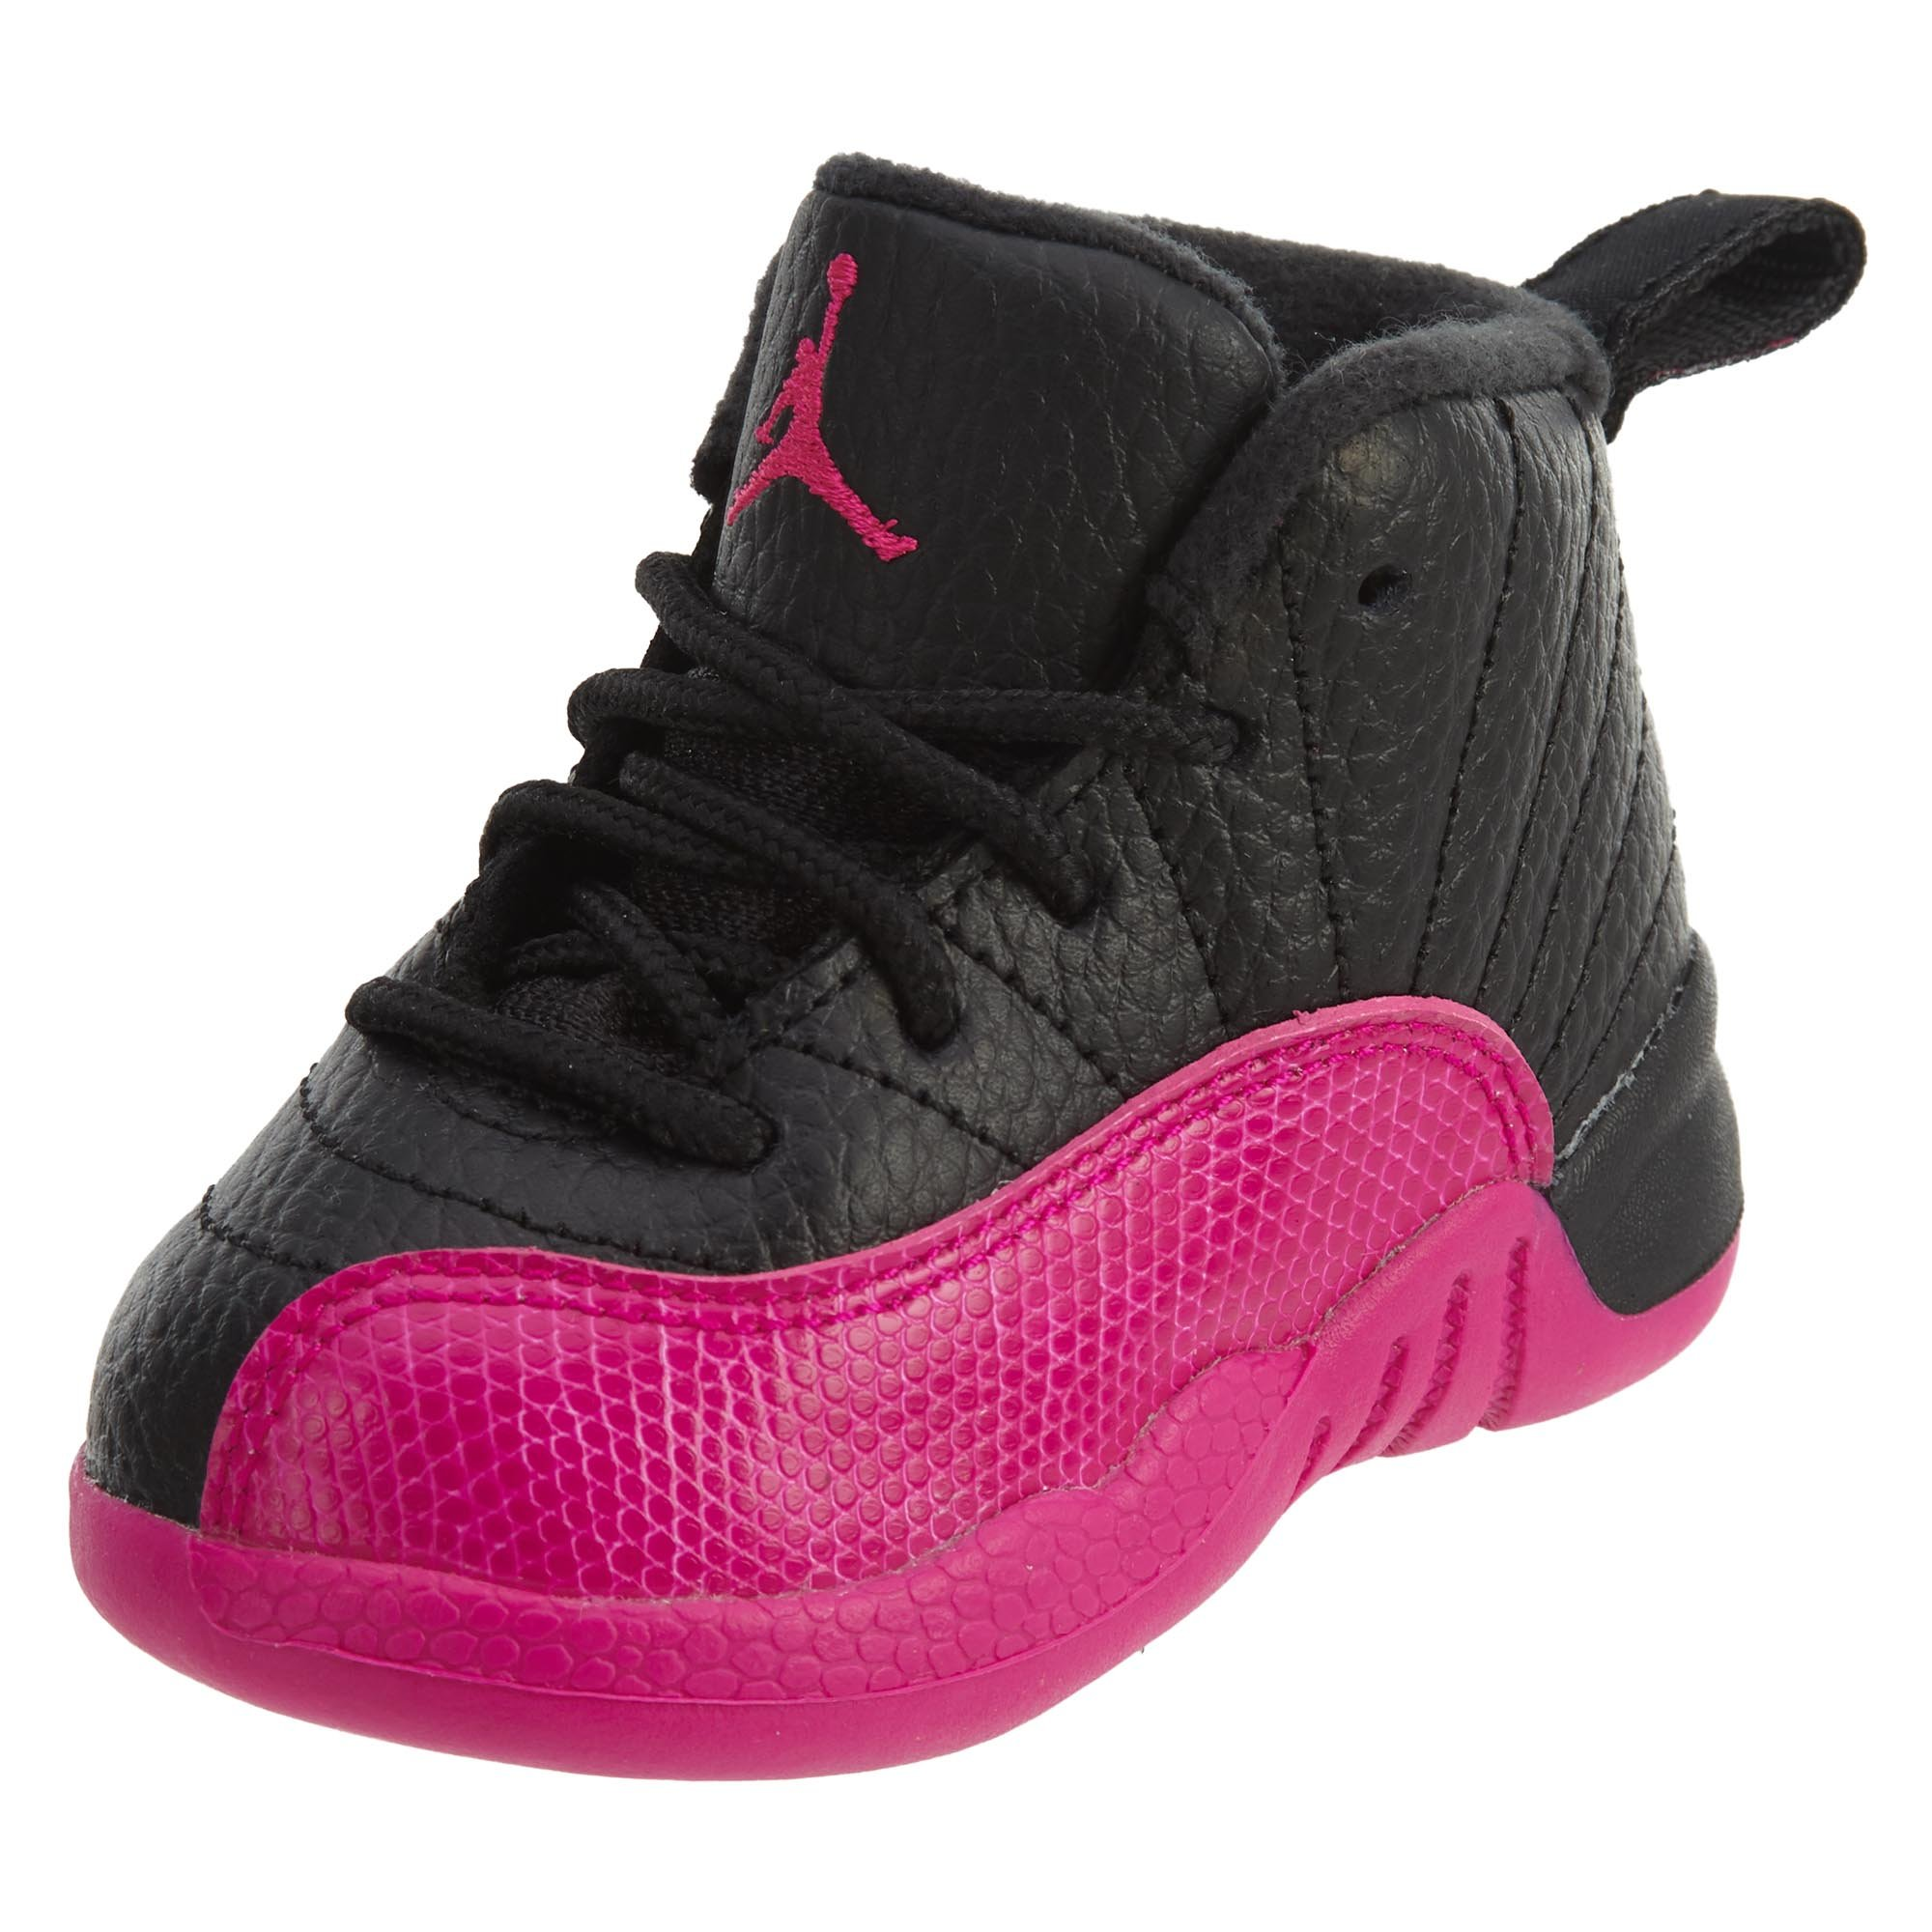 NIKE Jordan 12 Retro GT Toddlers Basketball Shoes Black/Deadly Pink 819666-026 (10 M US)